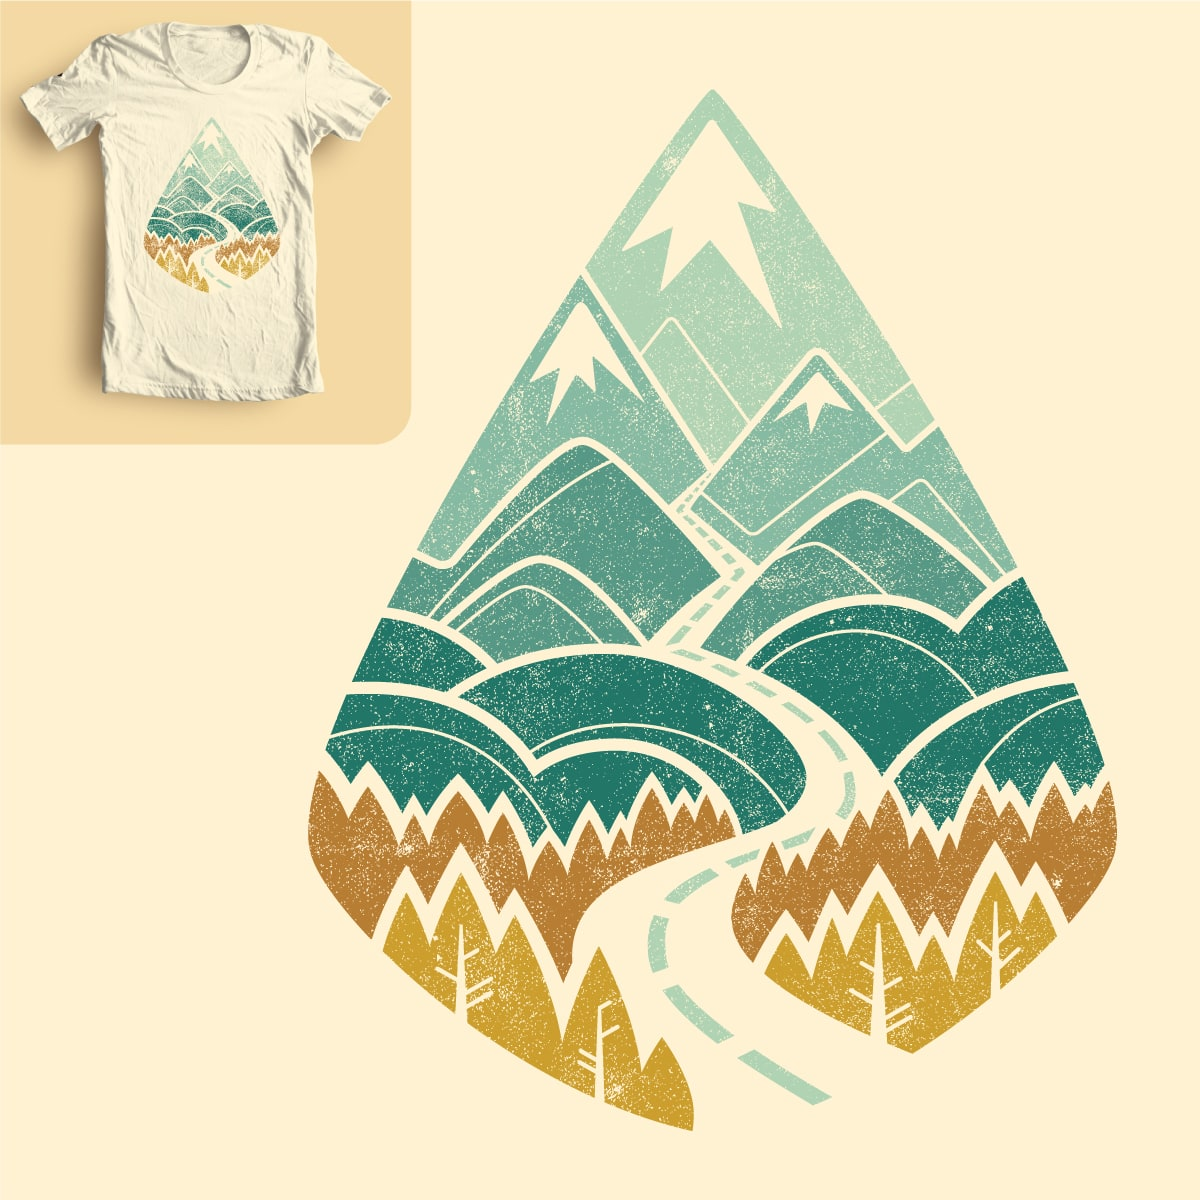 The road goes ever on. by waynem on Threadless